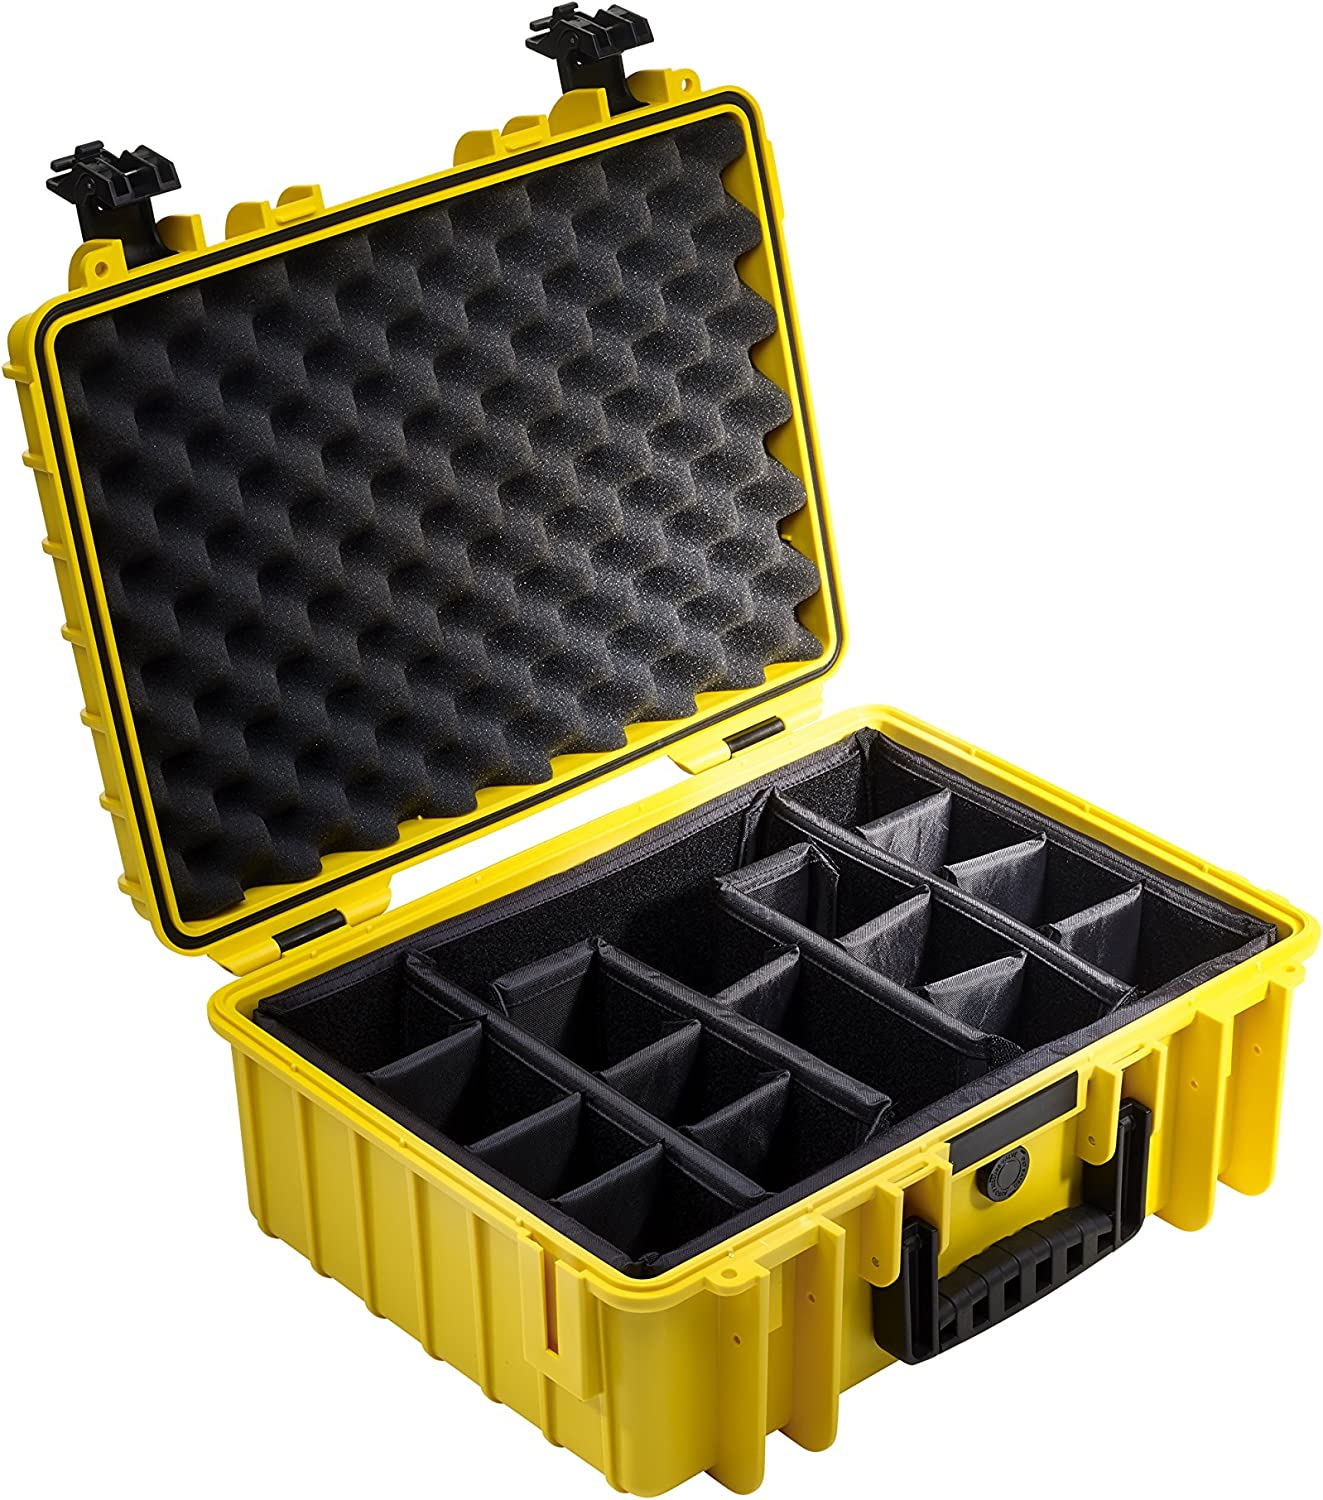 B/&W outdoor.cases  divider system The Original RPD for outdoor.case type 5500